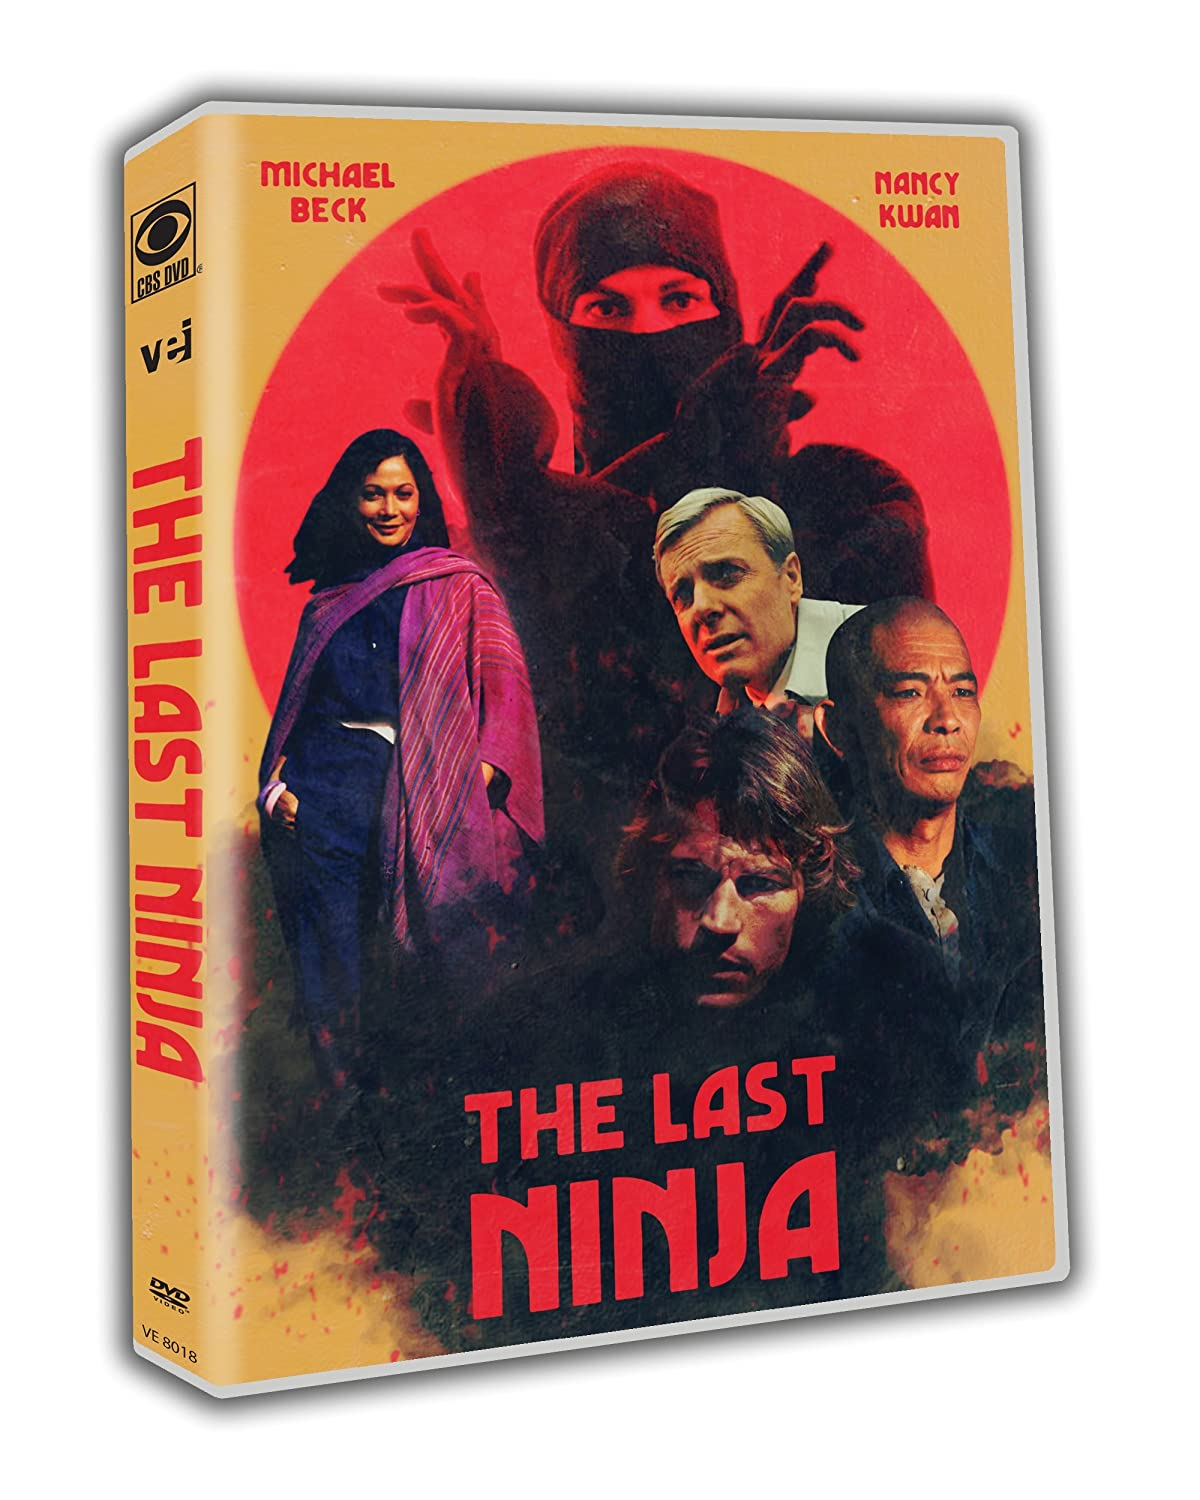 Amazon.com: The Last Ninja Starring Michael Beck and Nancy ...